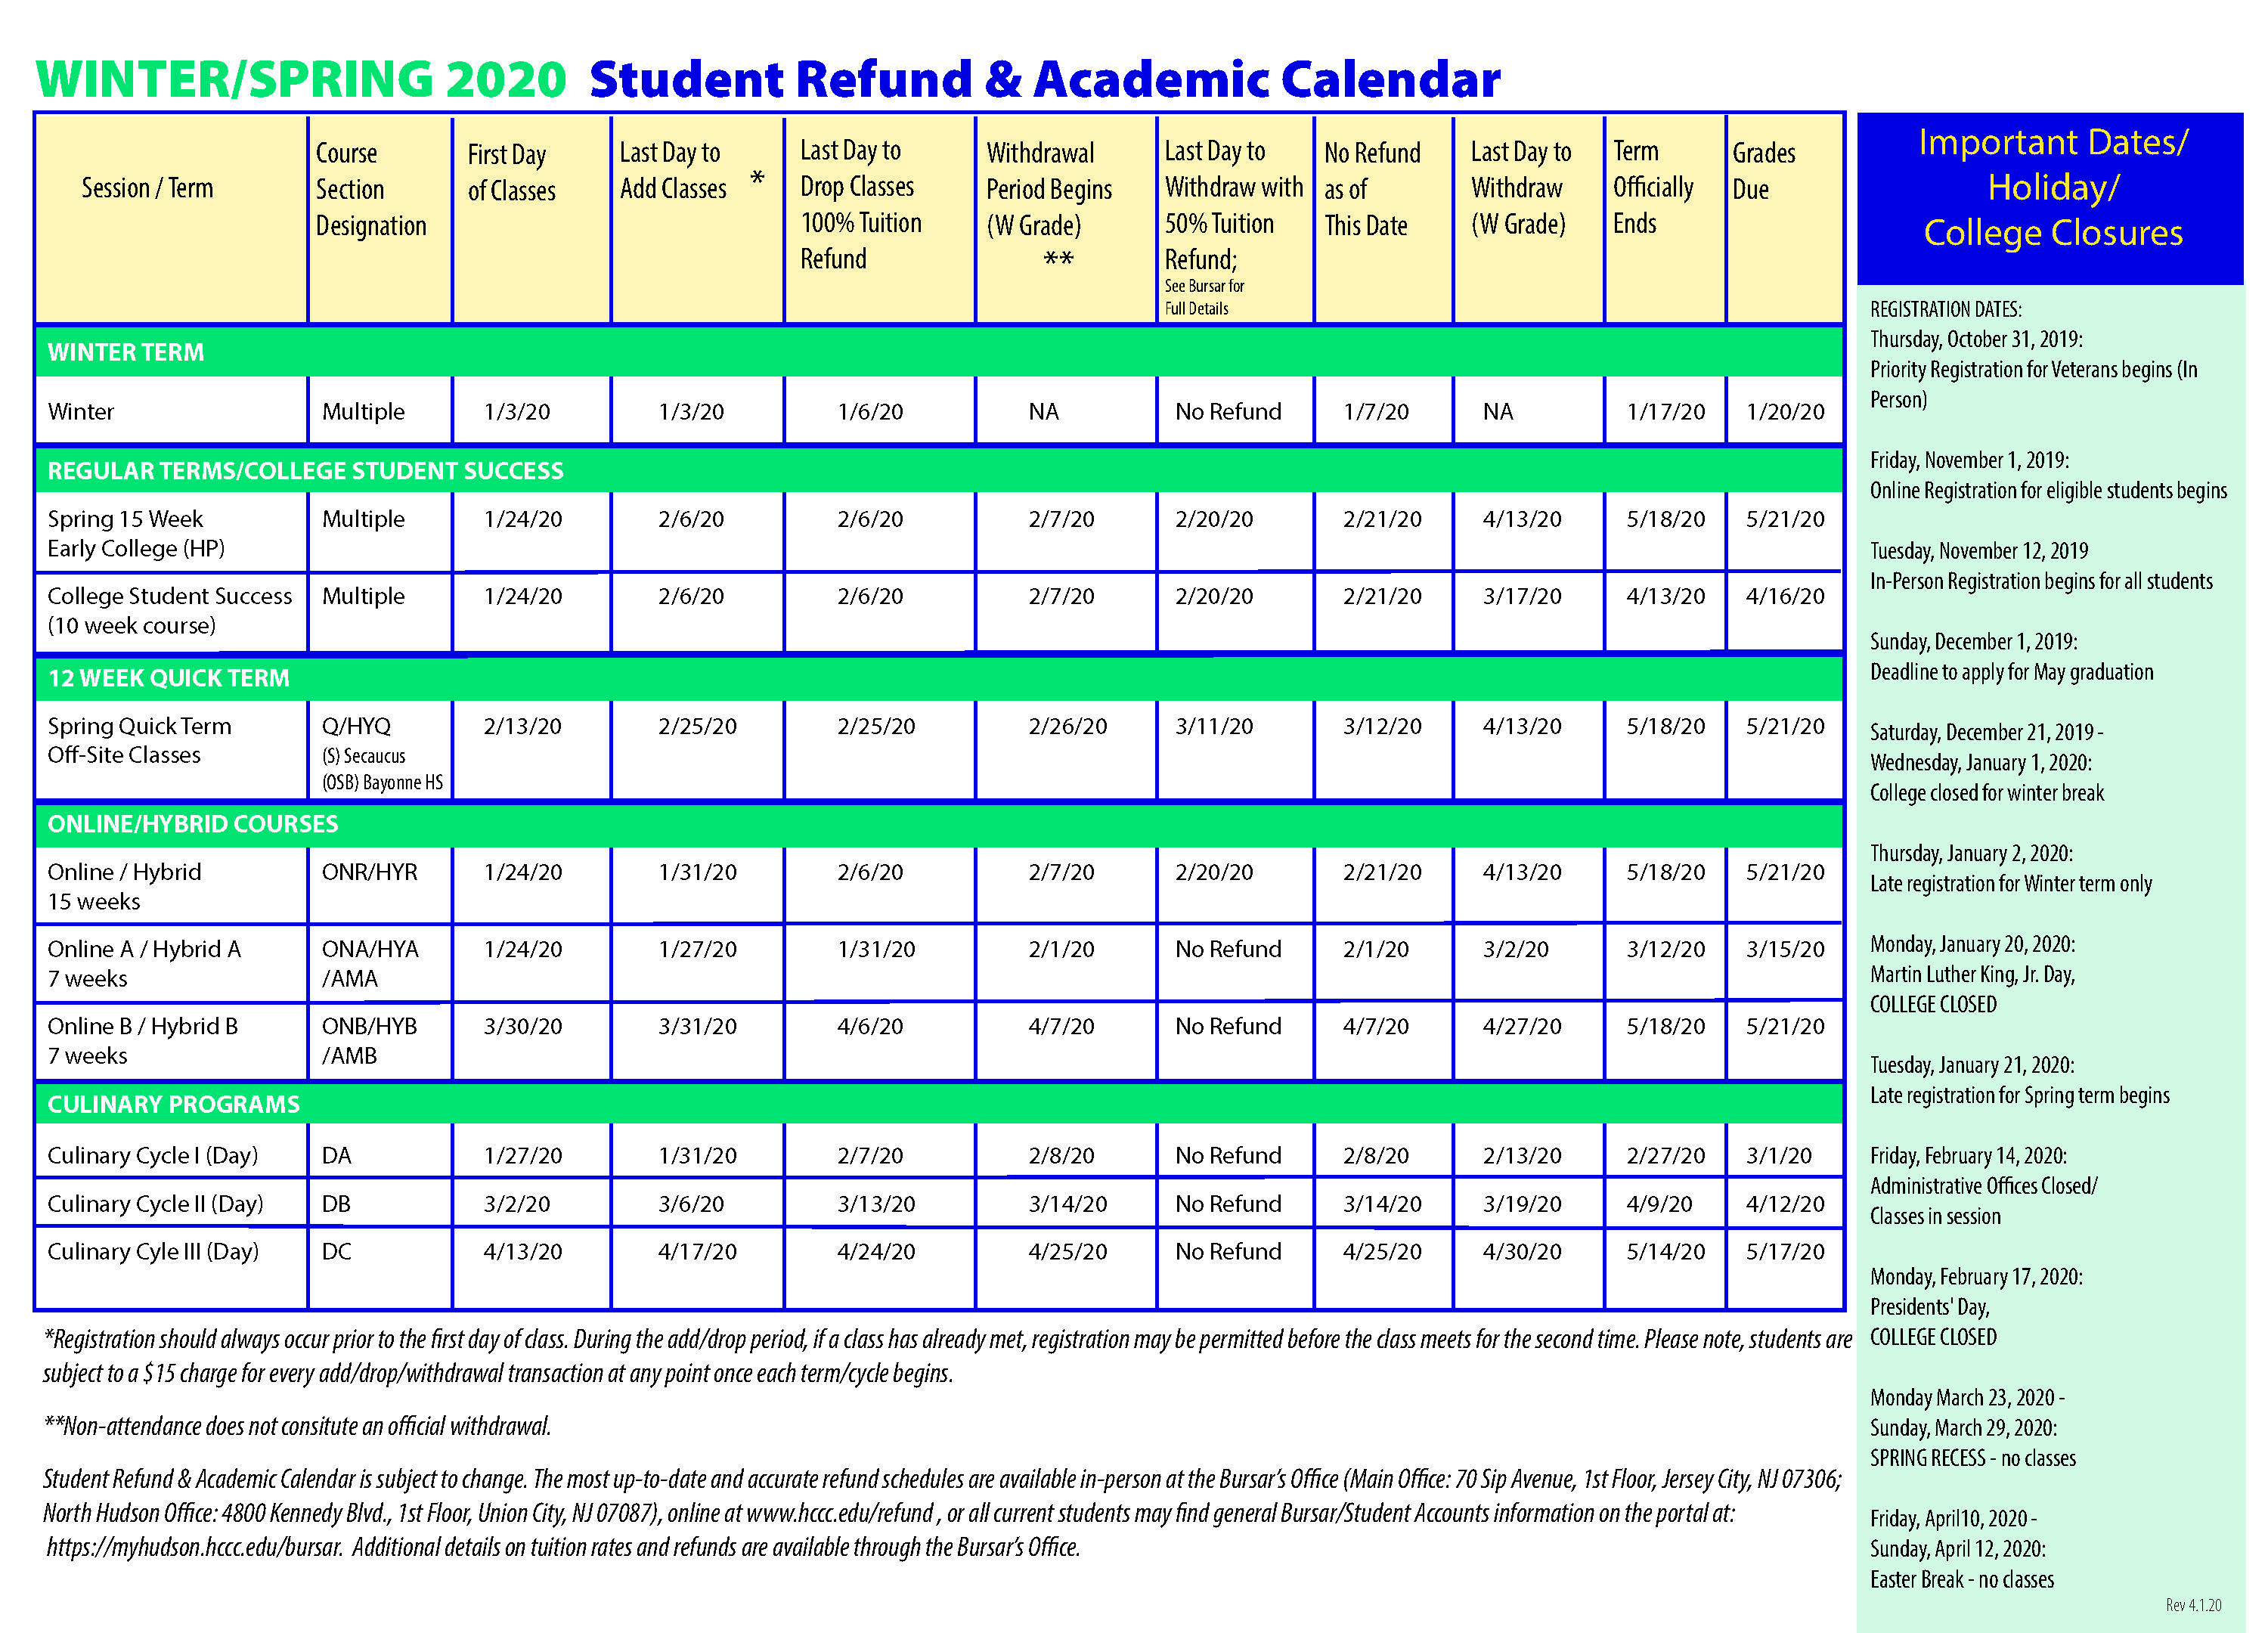 Hudson County Community College For Academic Calendar Suffolk Community College